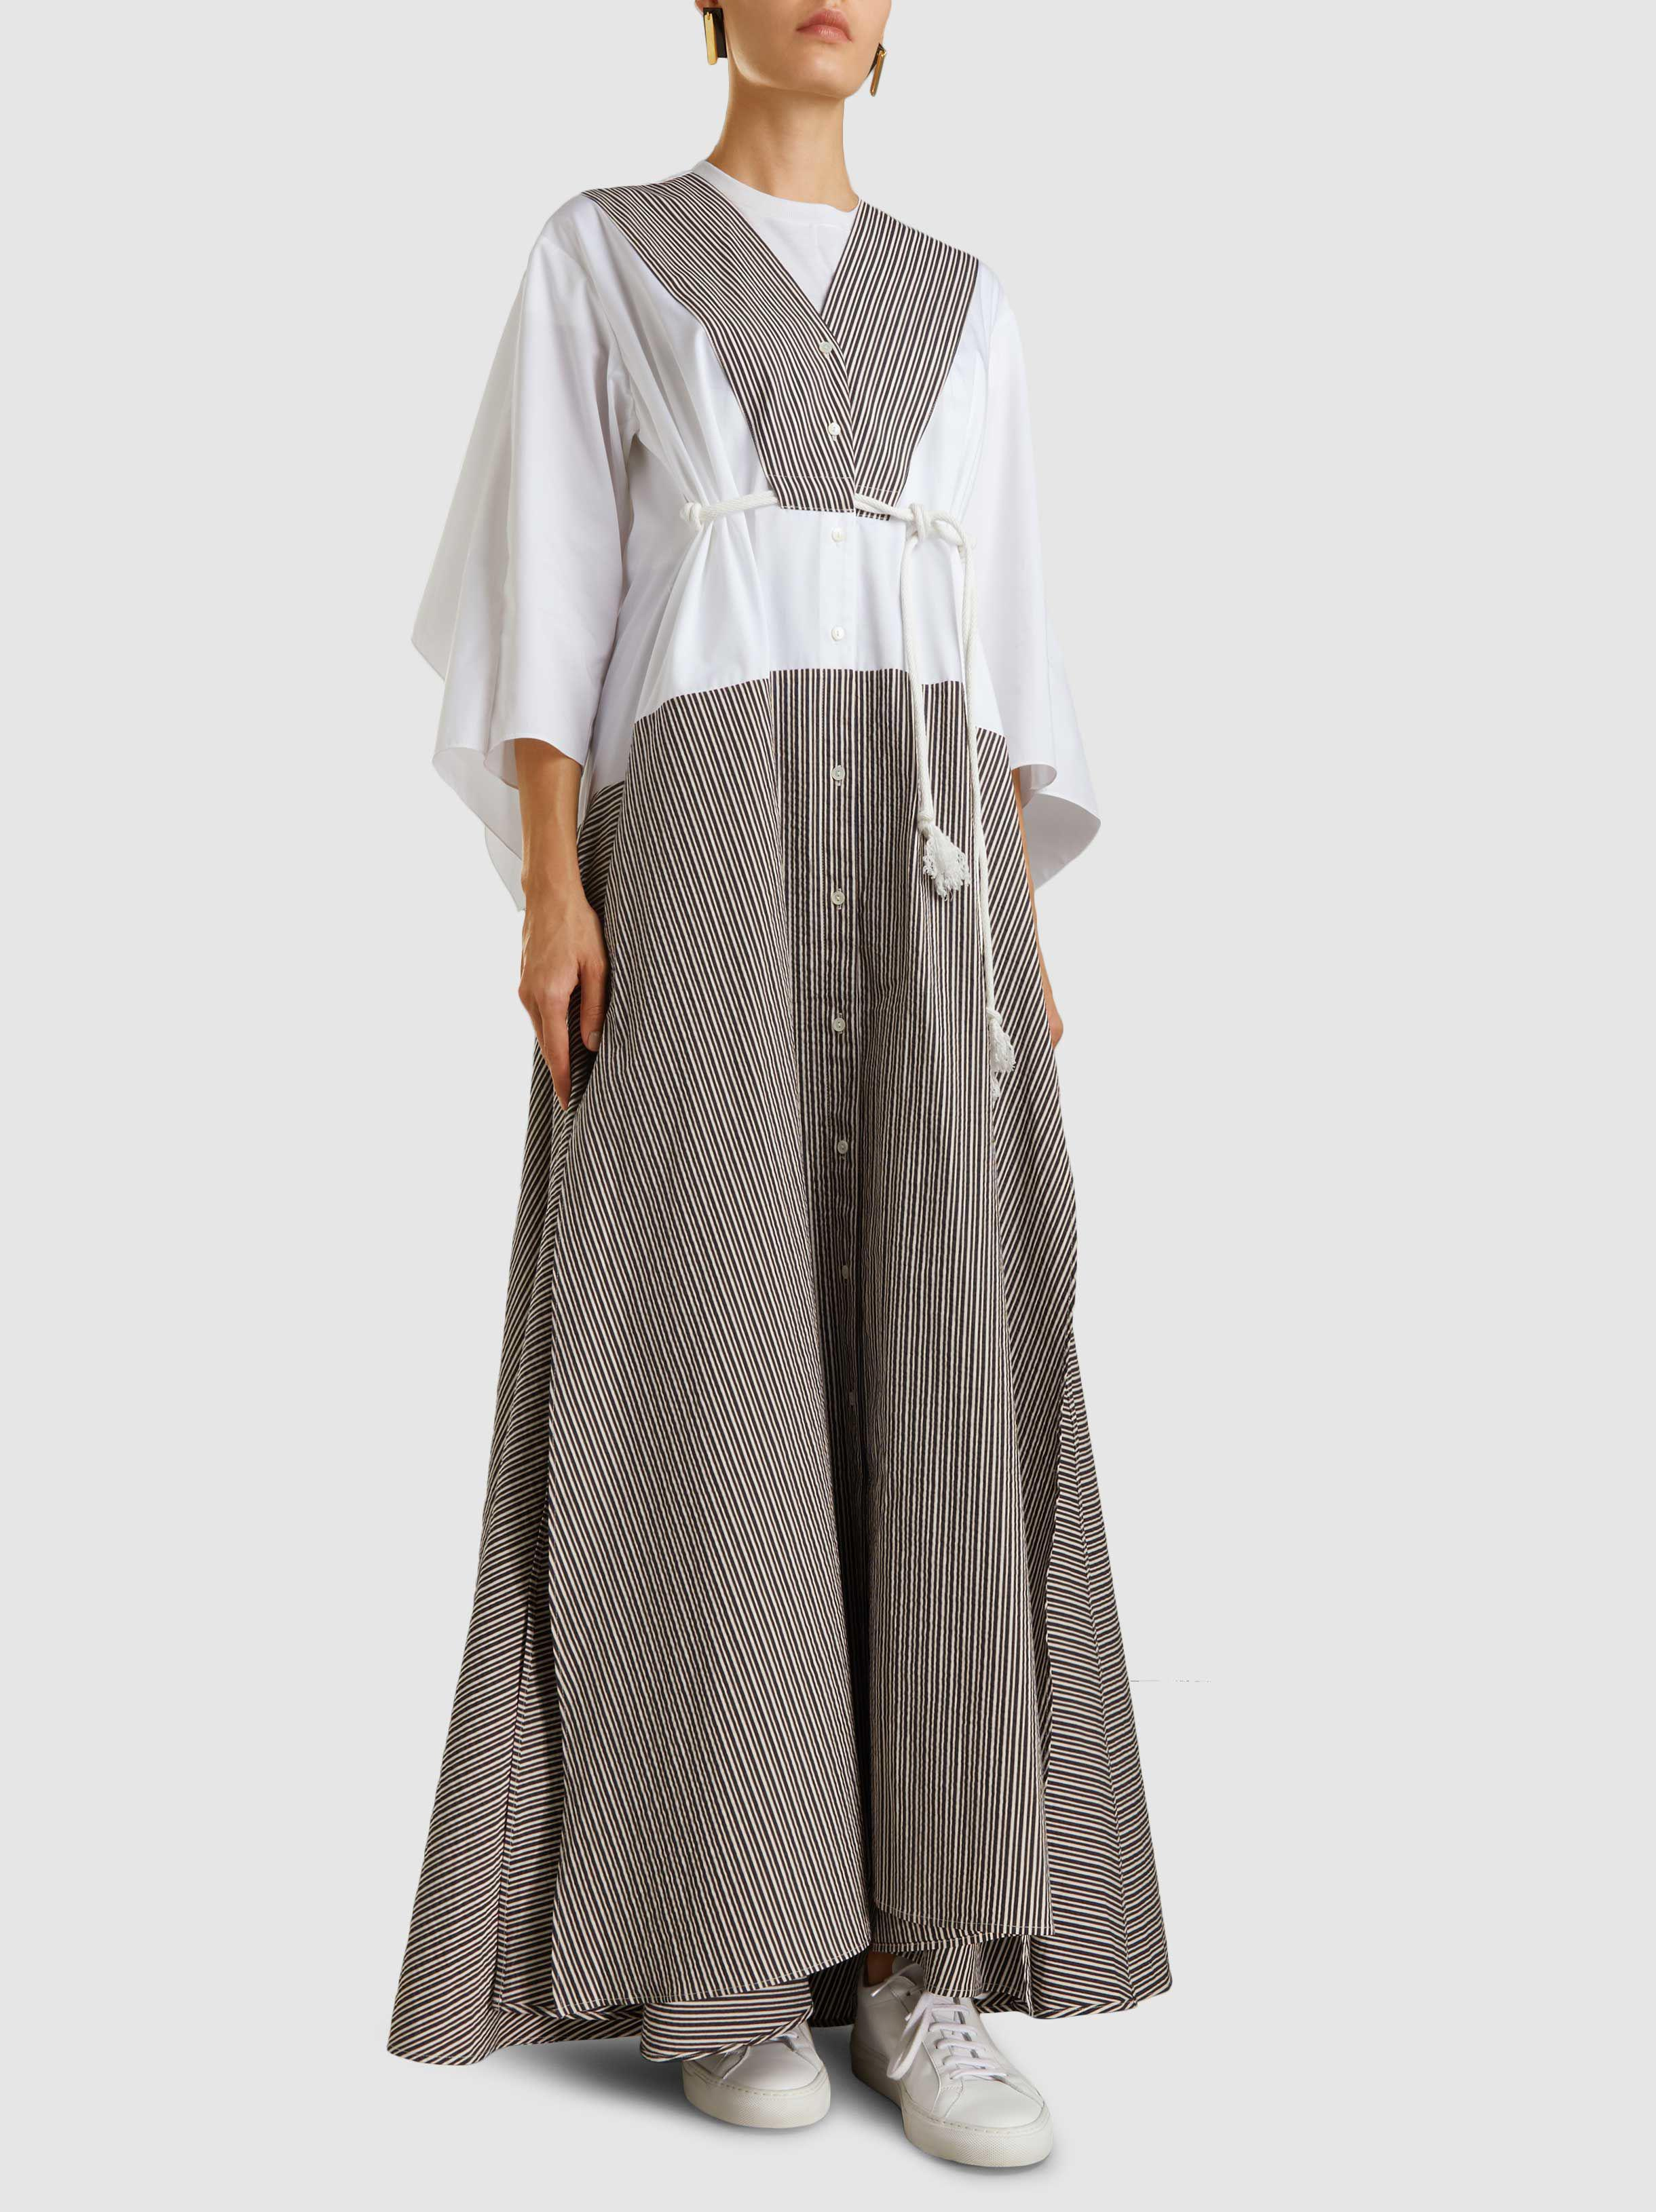 Manon Maxi Dress Palmer//harding Discount Extremely In China Online gwMbcZS